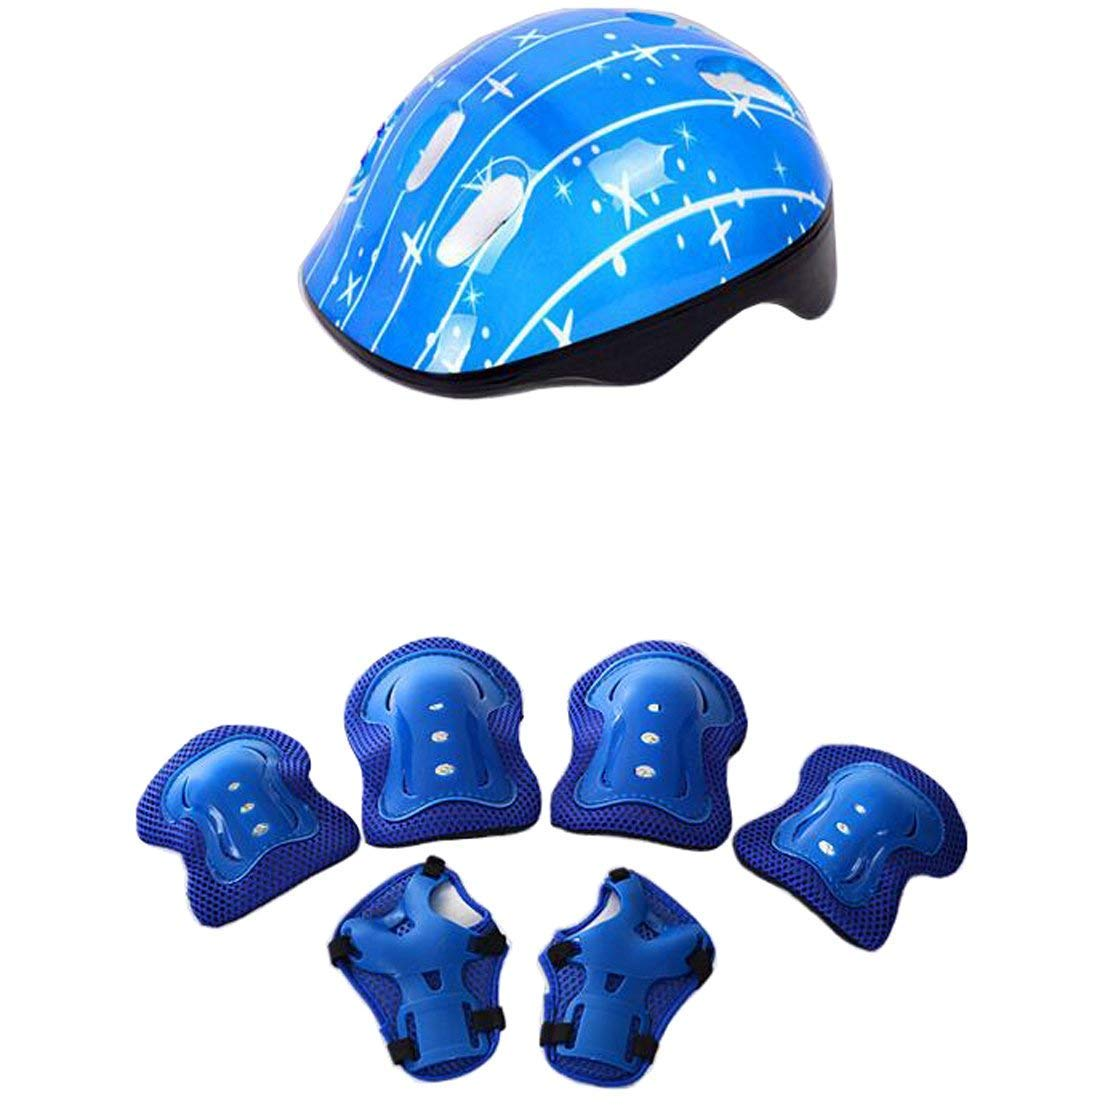 1Set(7Pcs) Adjustable Sports Protective Gear Set Include Helmet Knee Pad/Elbow Pad/Wrist Pad for Cycling Skateboarding Skating Rollerblading Etc - Suitable for 3-12 Years Old Kids Youth(Blue)